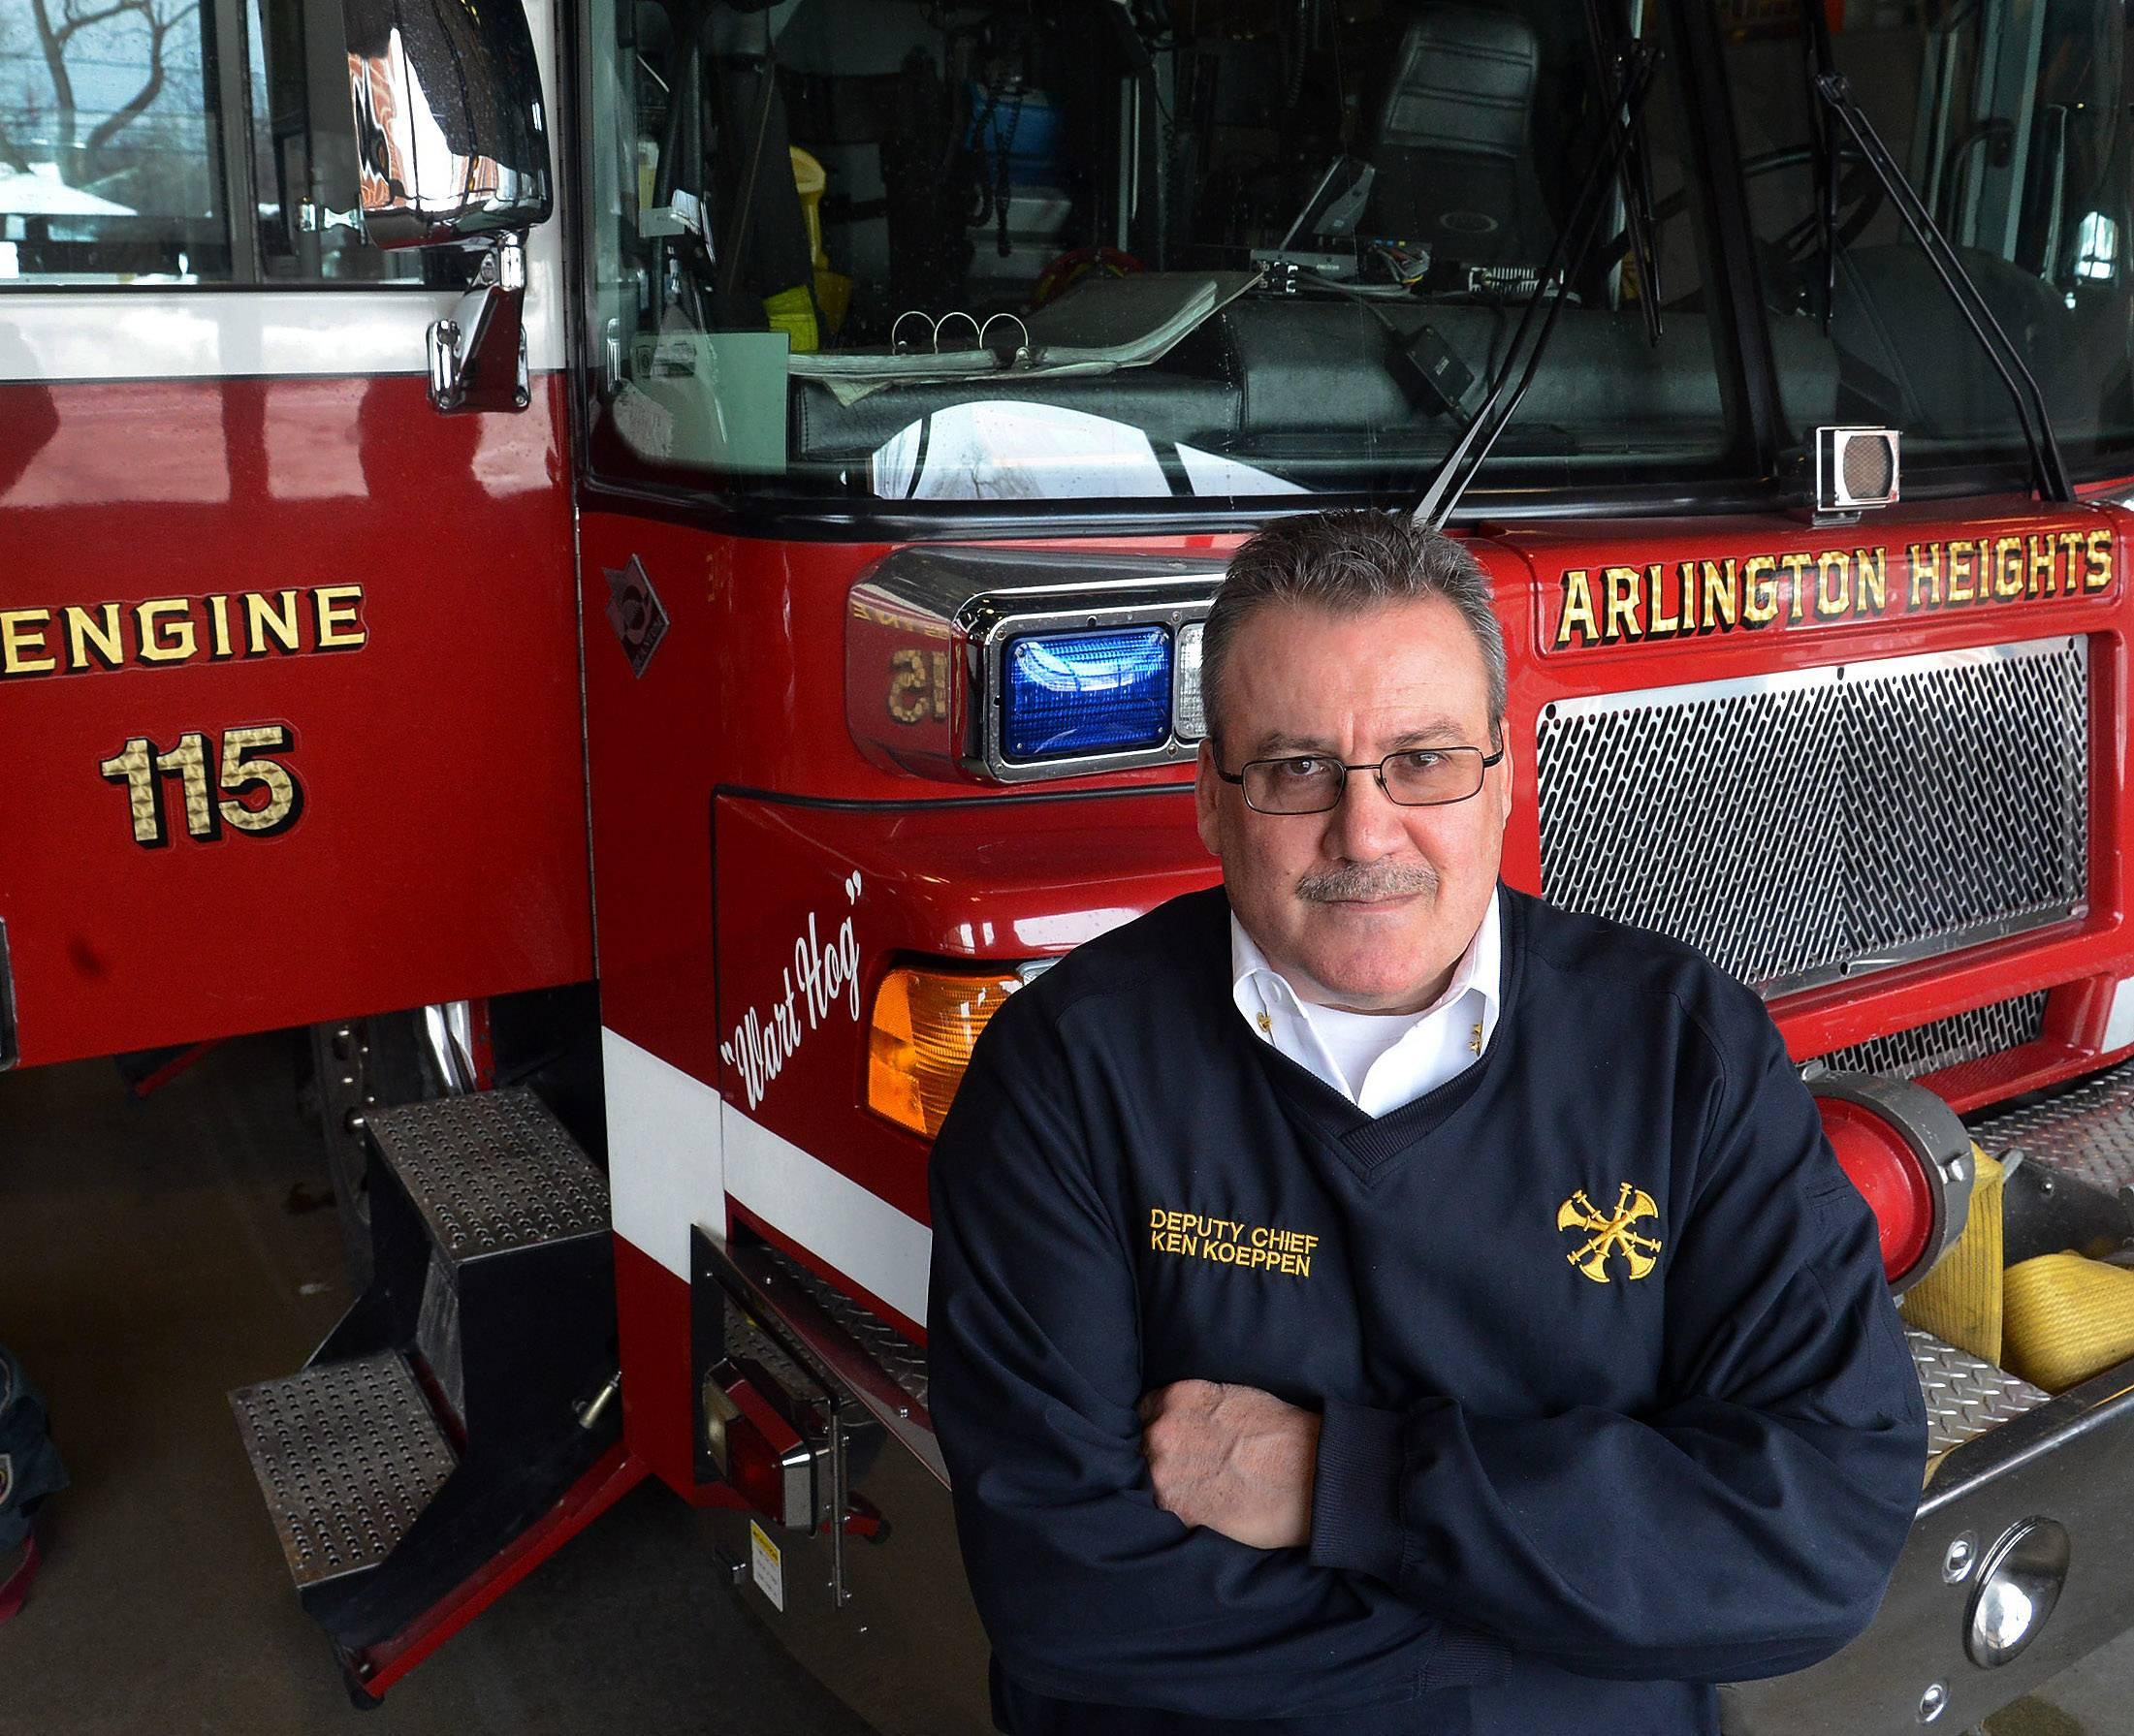 Arlington Heights has named Deputy Fire Chief Ken Koeppen as the first department's acting chief effective Friday. Koeppen, a 33-year department veteran, replaces retiring Chief Glenn Ericksen.